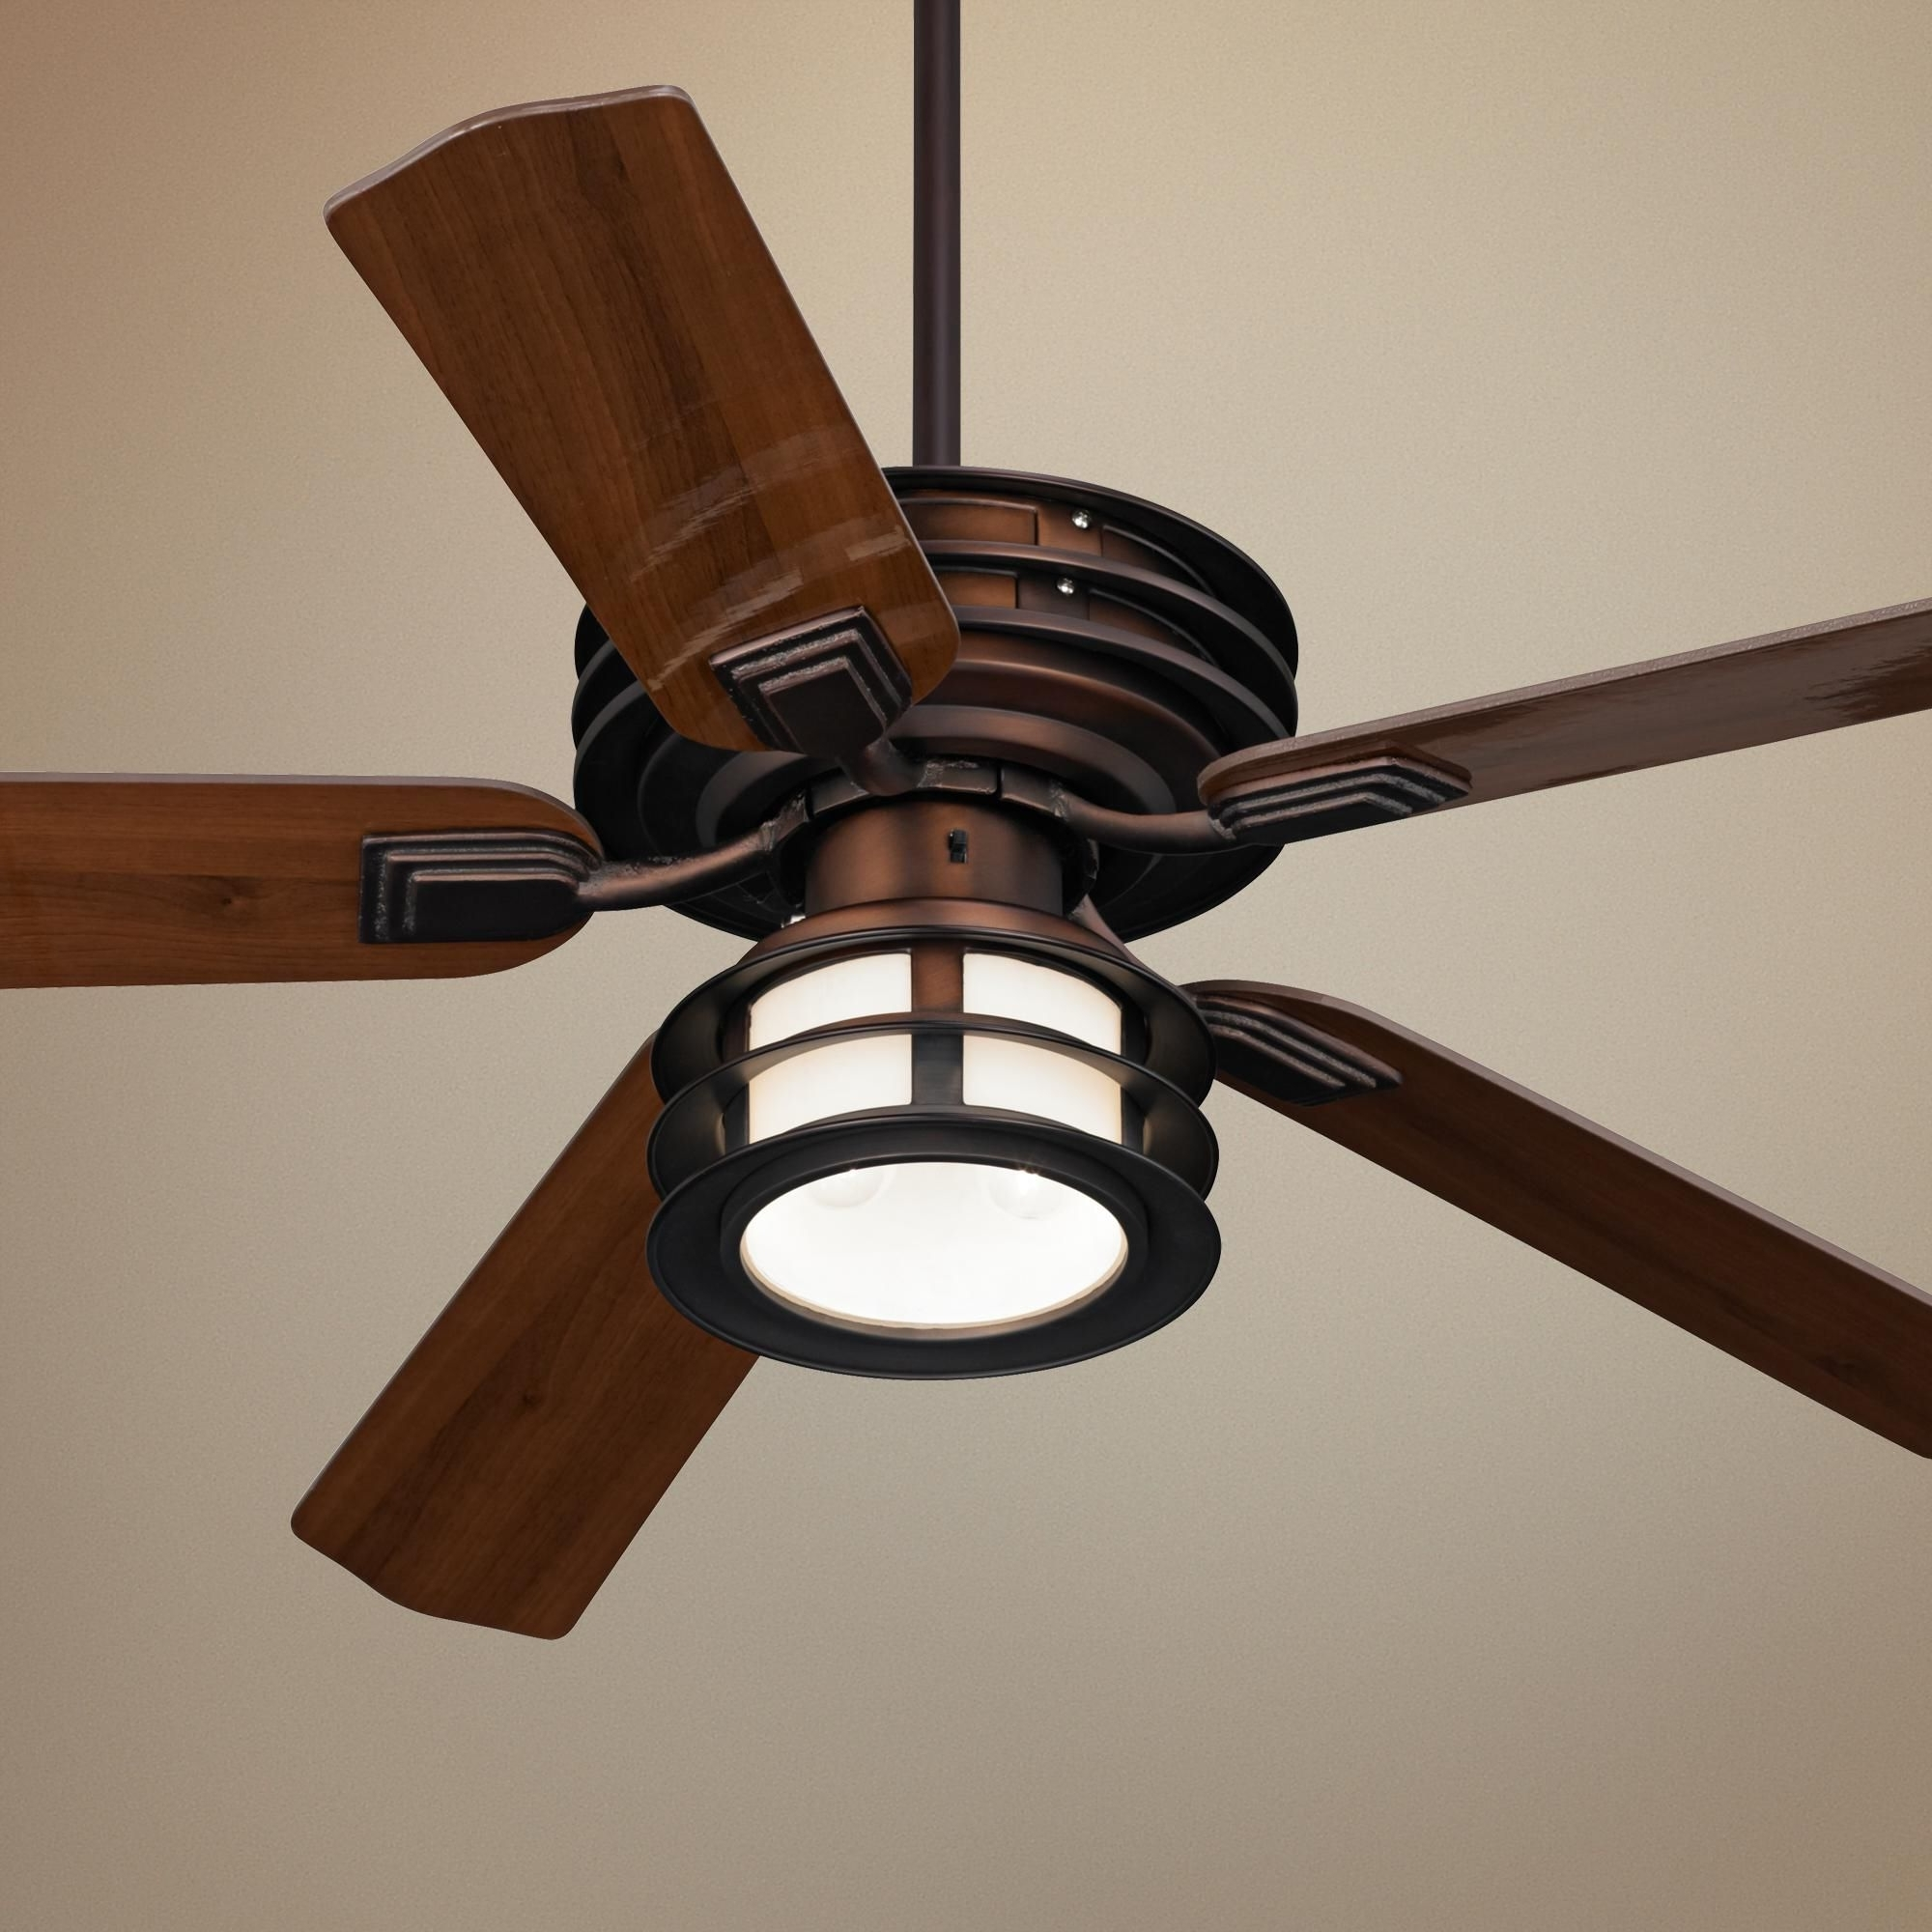 "Craftsman Outdoor Ceiling Fans With Regard To Favorite 52"" Casa Vieja Mission Ii Bronze Outdoor Ceiling Fan (View 9 of 20)"